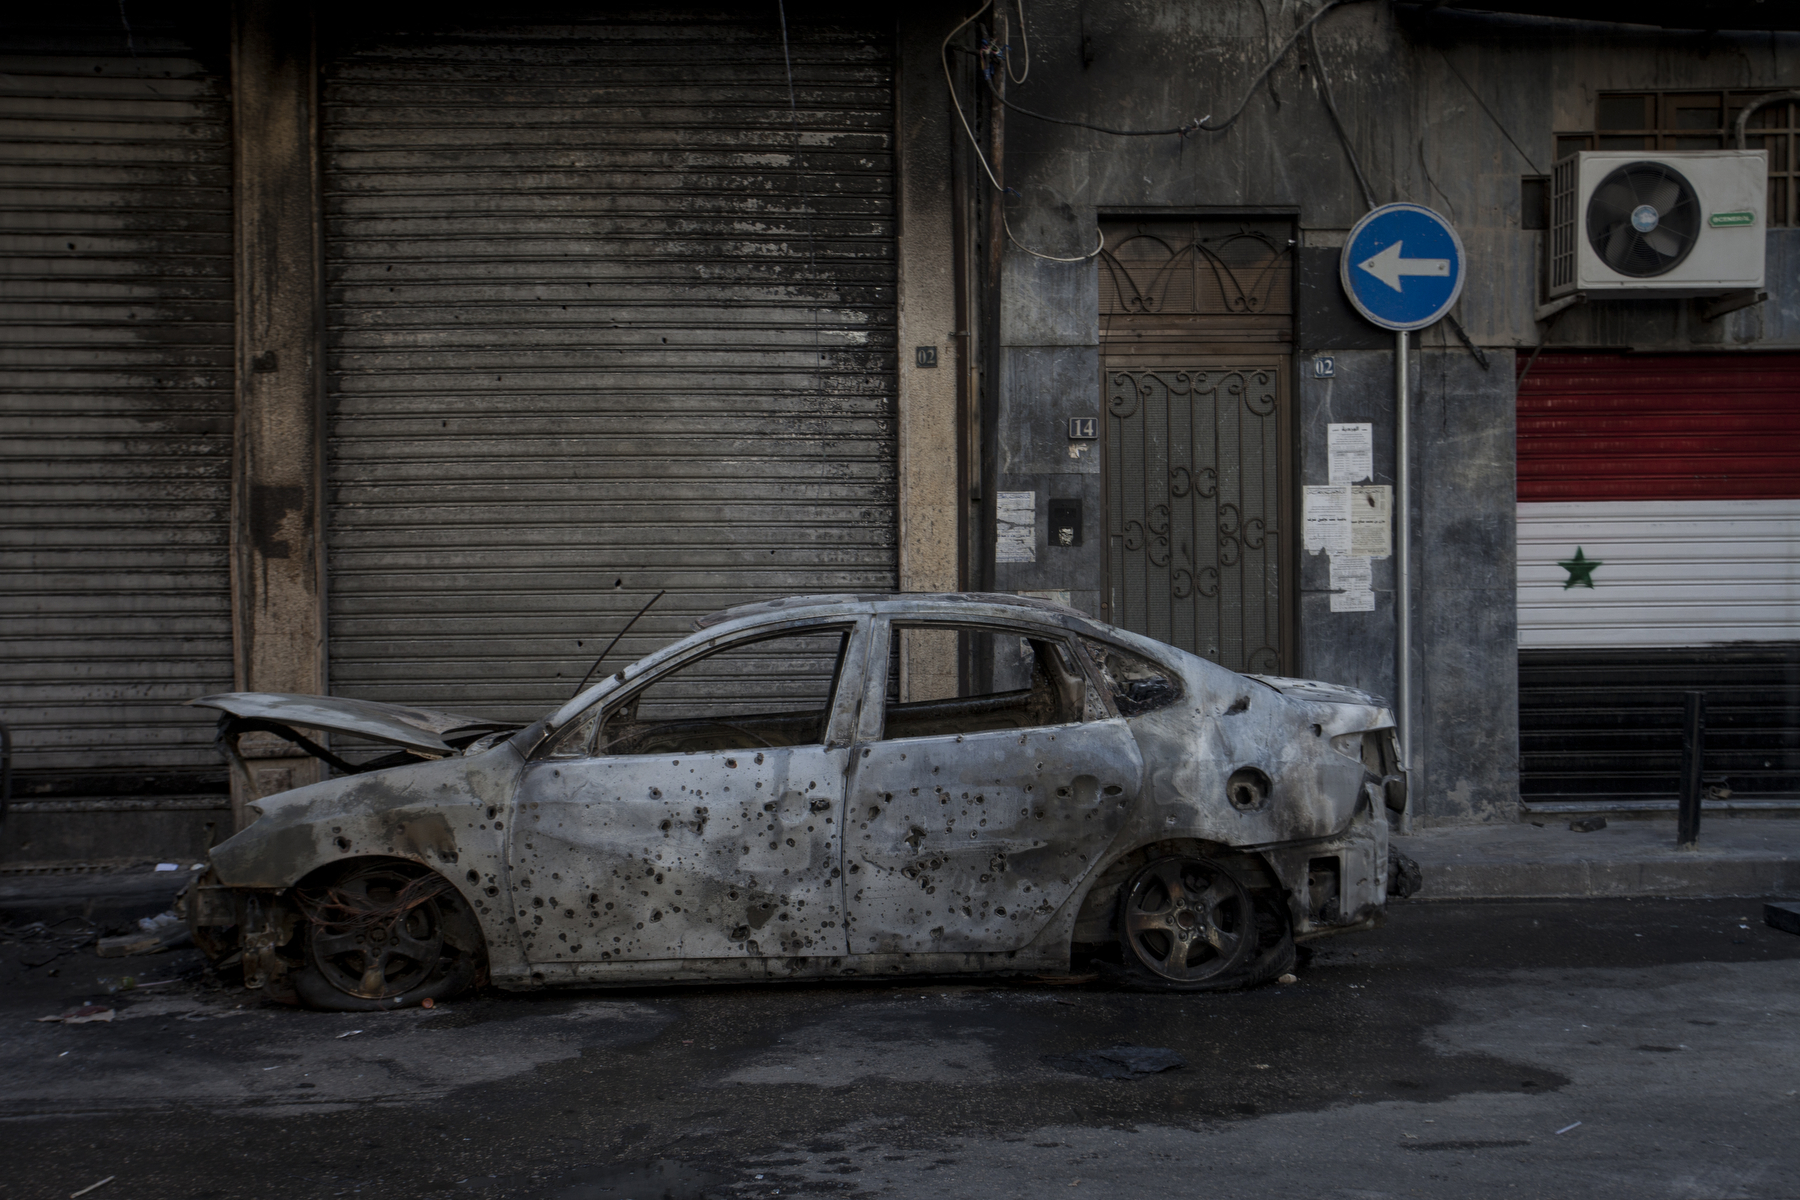 Damascus, 2015, A burnt car in the downtown Salhiya district of Damascus, a day after a mortar fell on the street, launched from the rebel-held area.